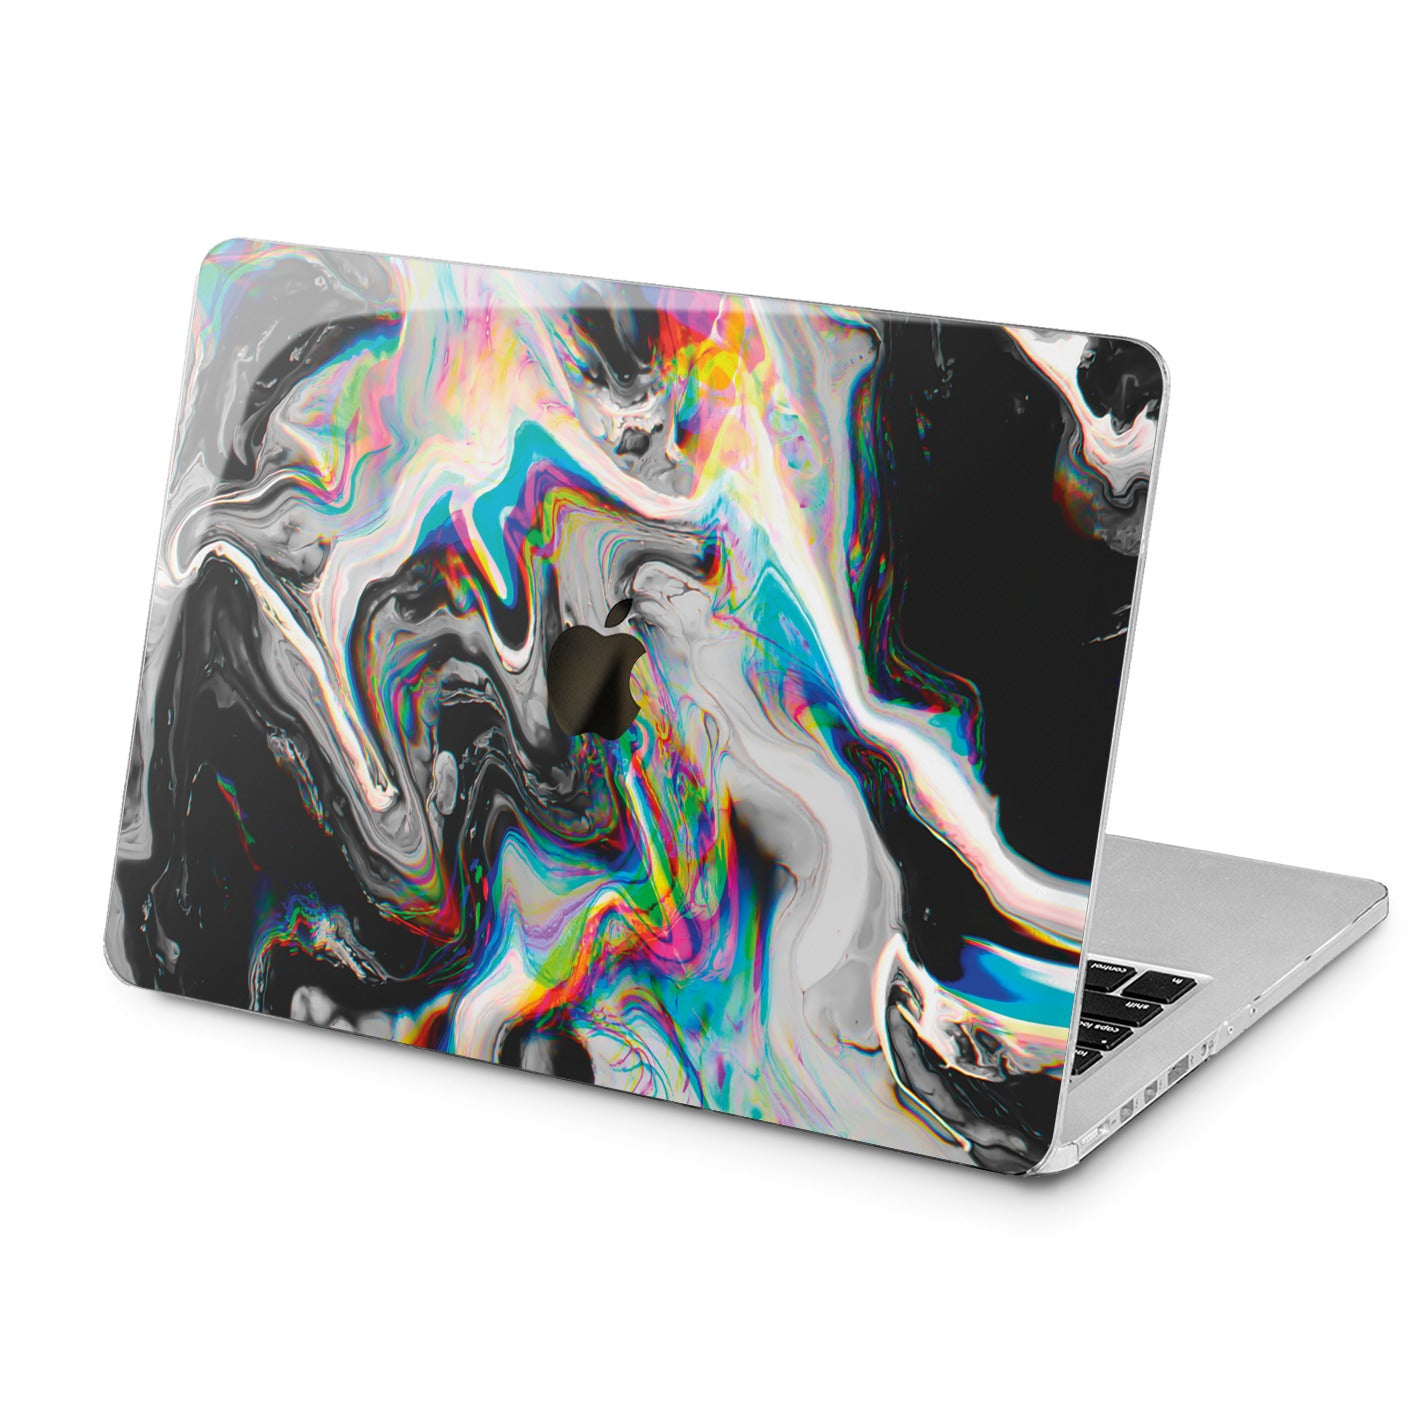 Lex Altern Lex Altern Glitch Art Case for your Laptop Apple Macbook.